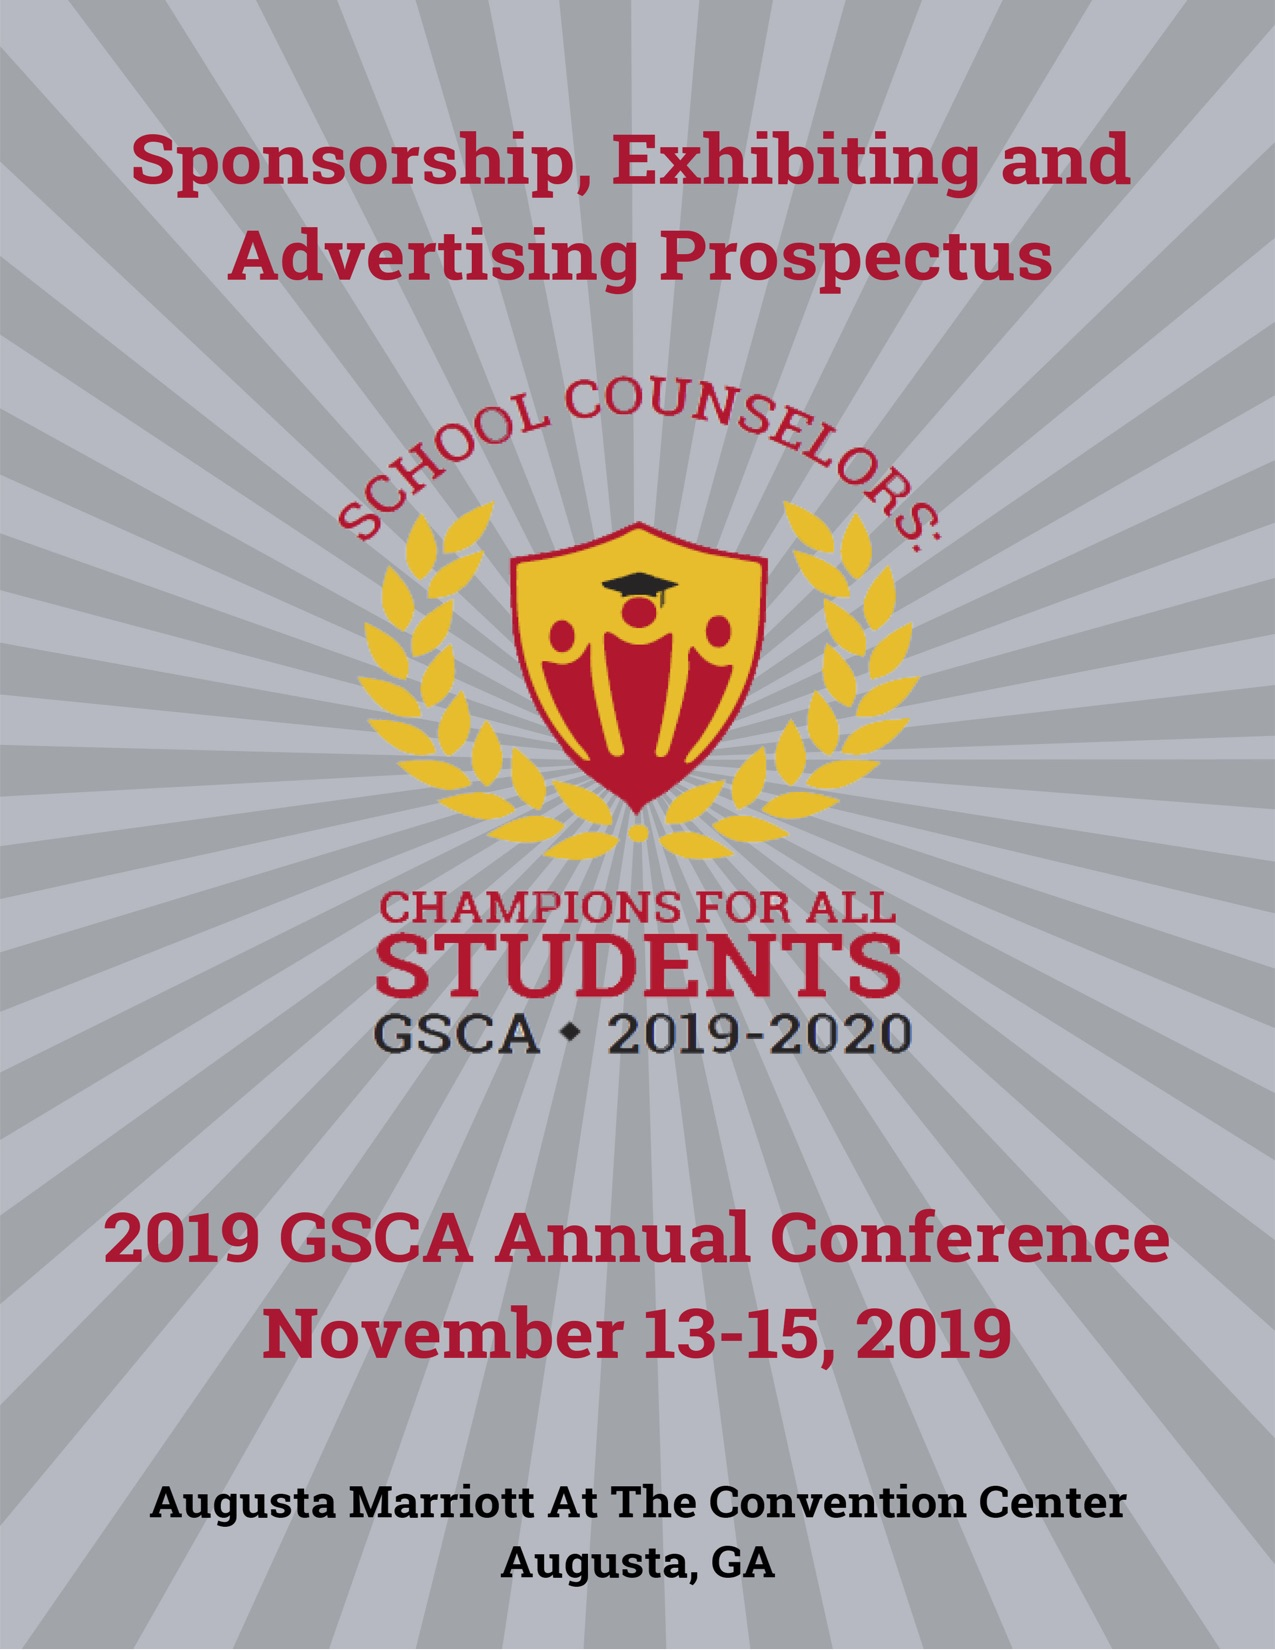 GSCA 2019 Sponsorship Exhibiting Advertising - Georgia School